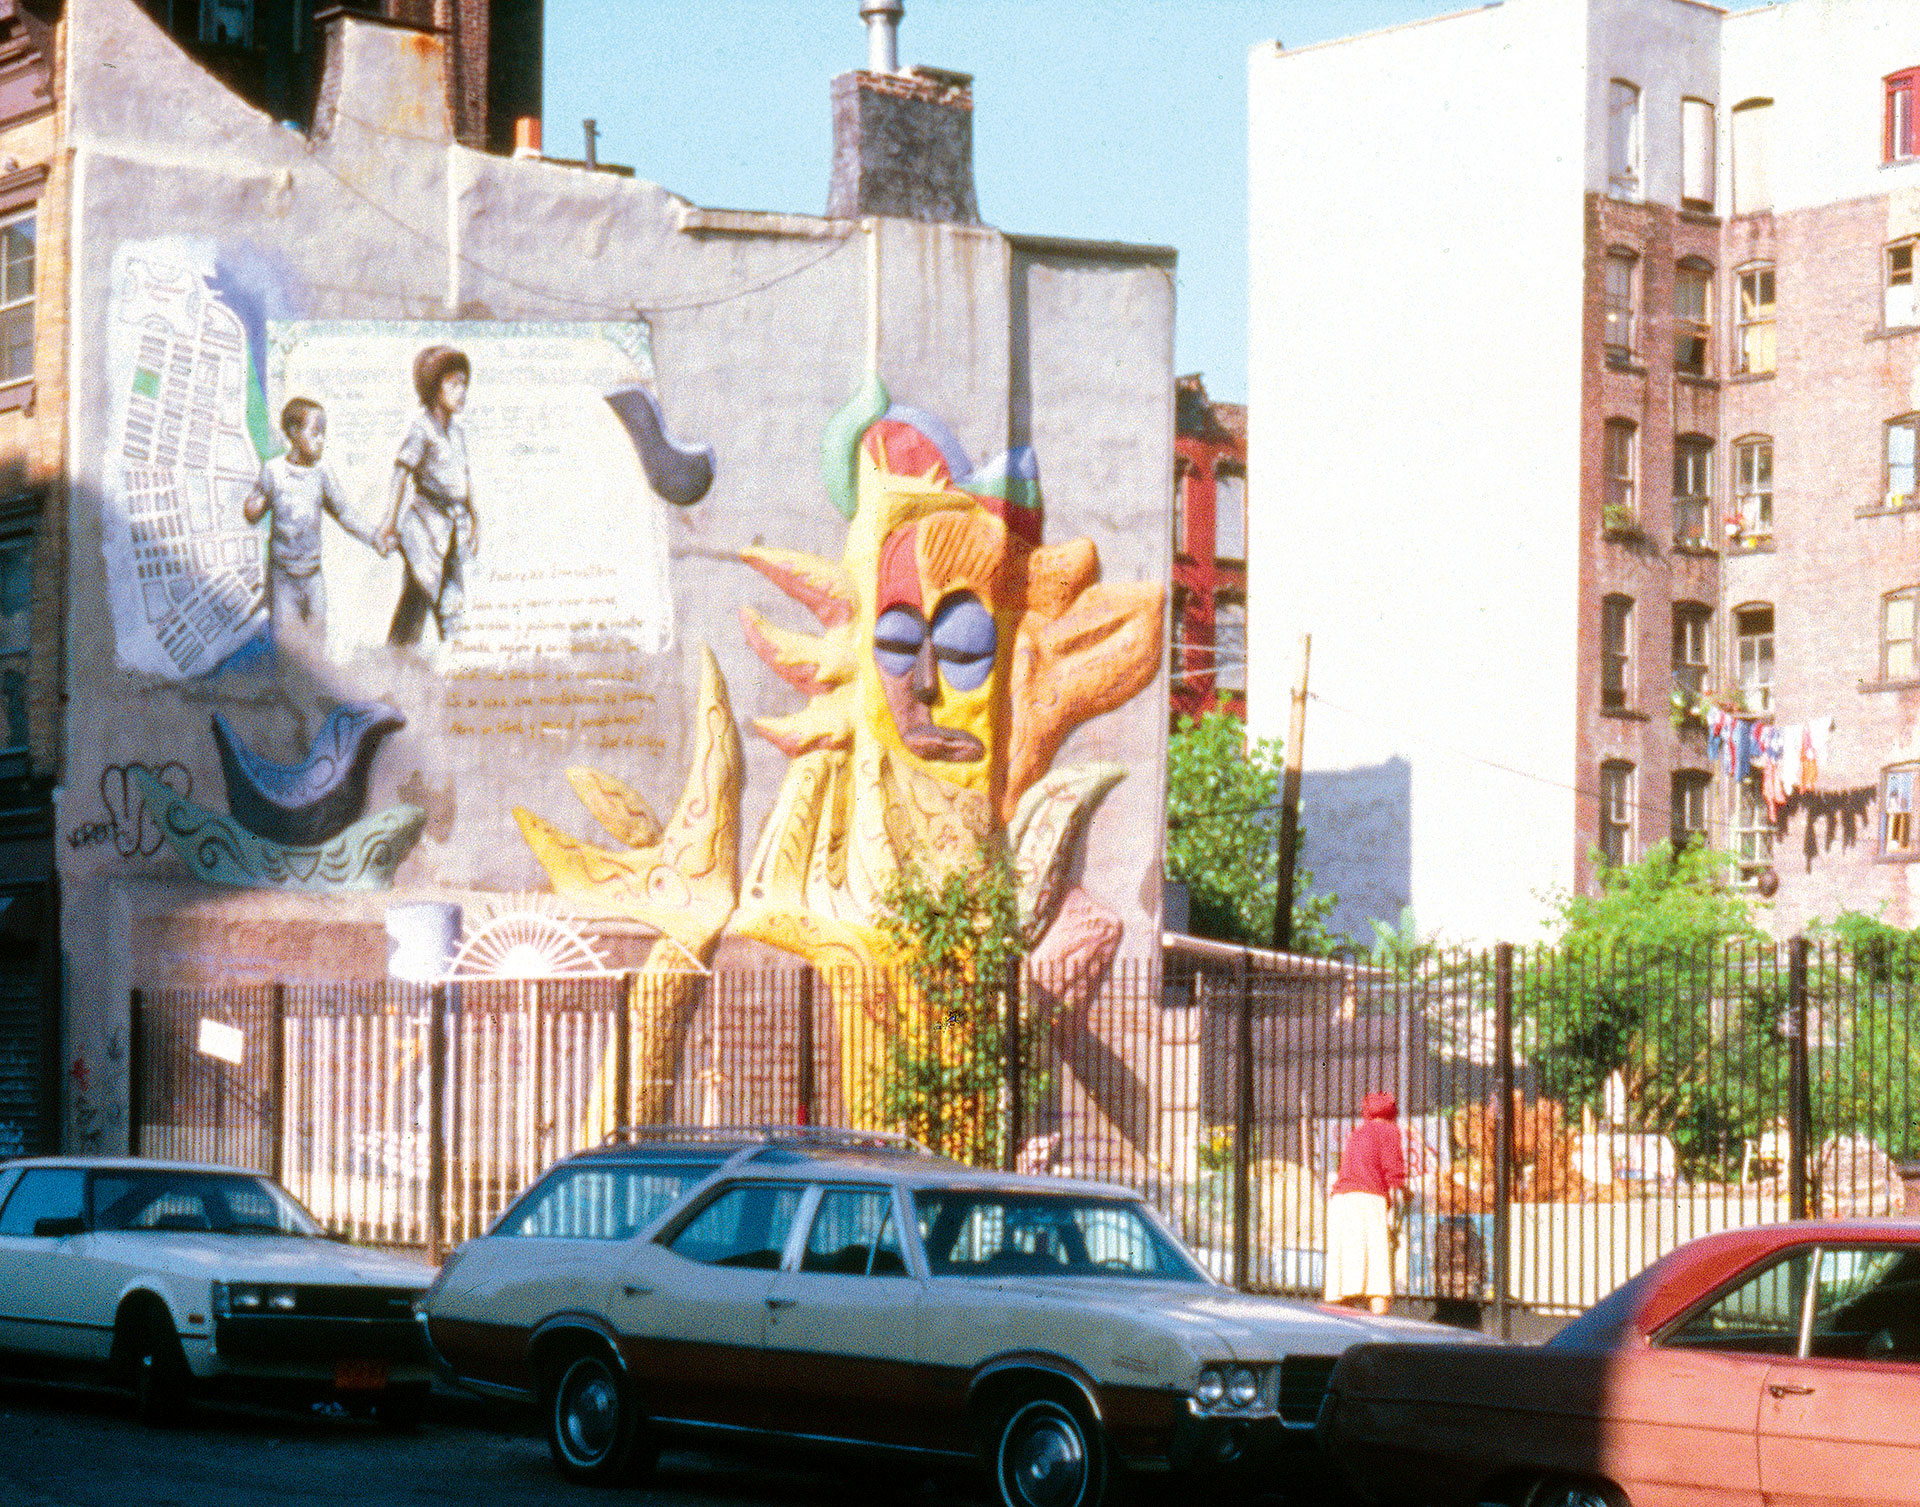 'From One Generation to Another The Struggle Continues , John Pitman Weber, 1984, Cityarts Workshop, 1984.  The mural overlooks El Jardín Bello Amanecer Borinqueño, created by community juror Carmen Pabón (in front of garden gate).  Photo: source unknown